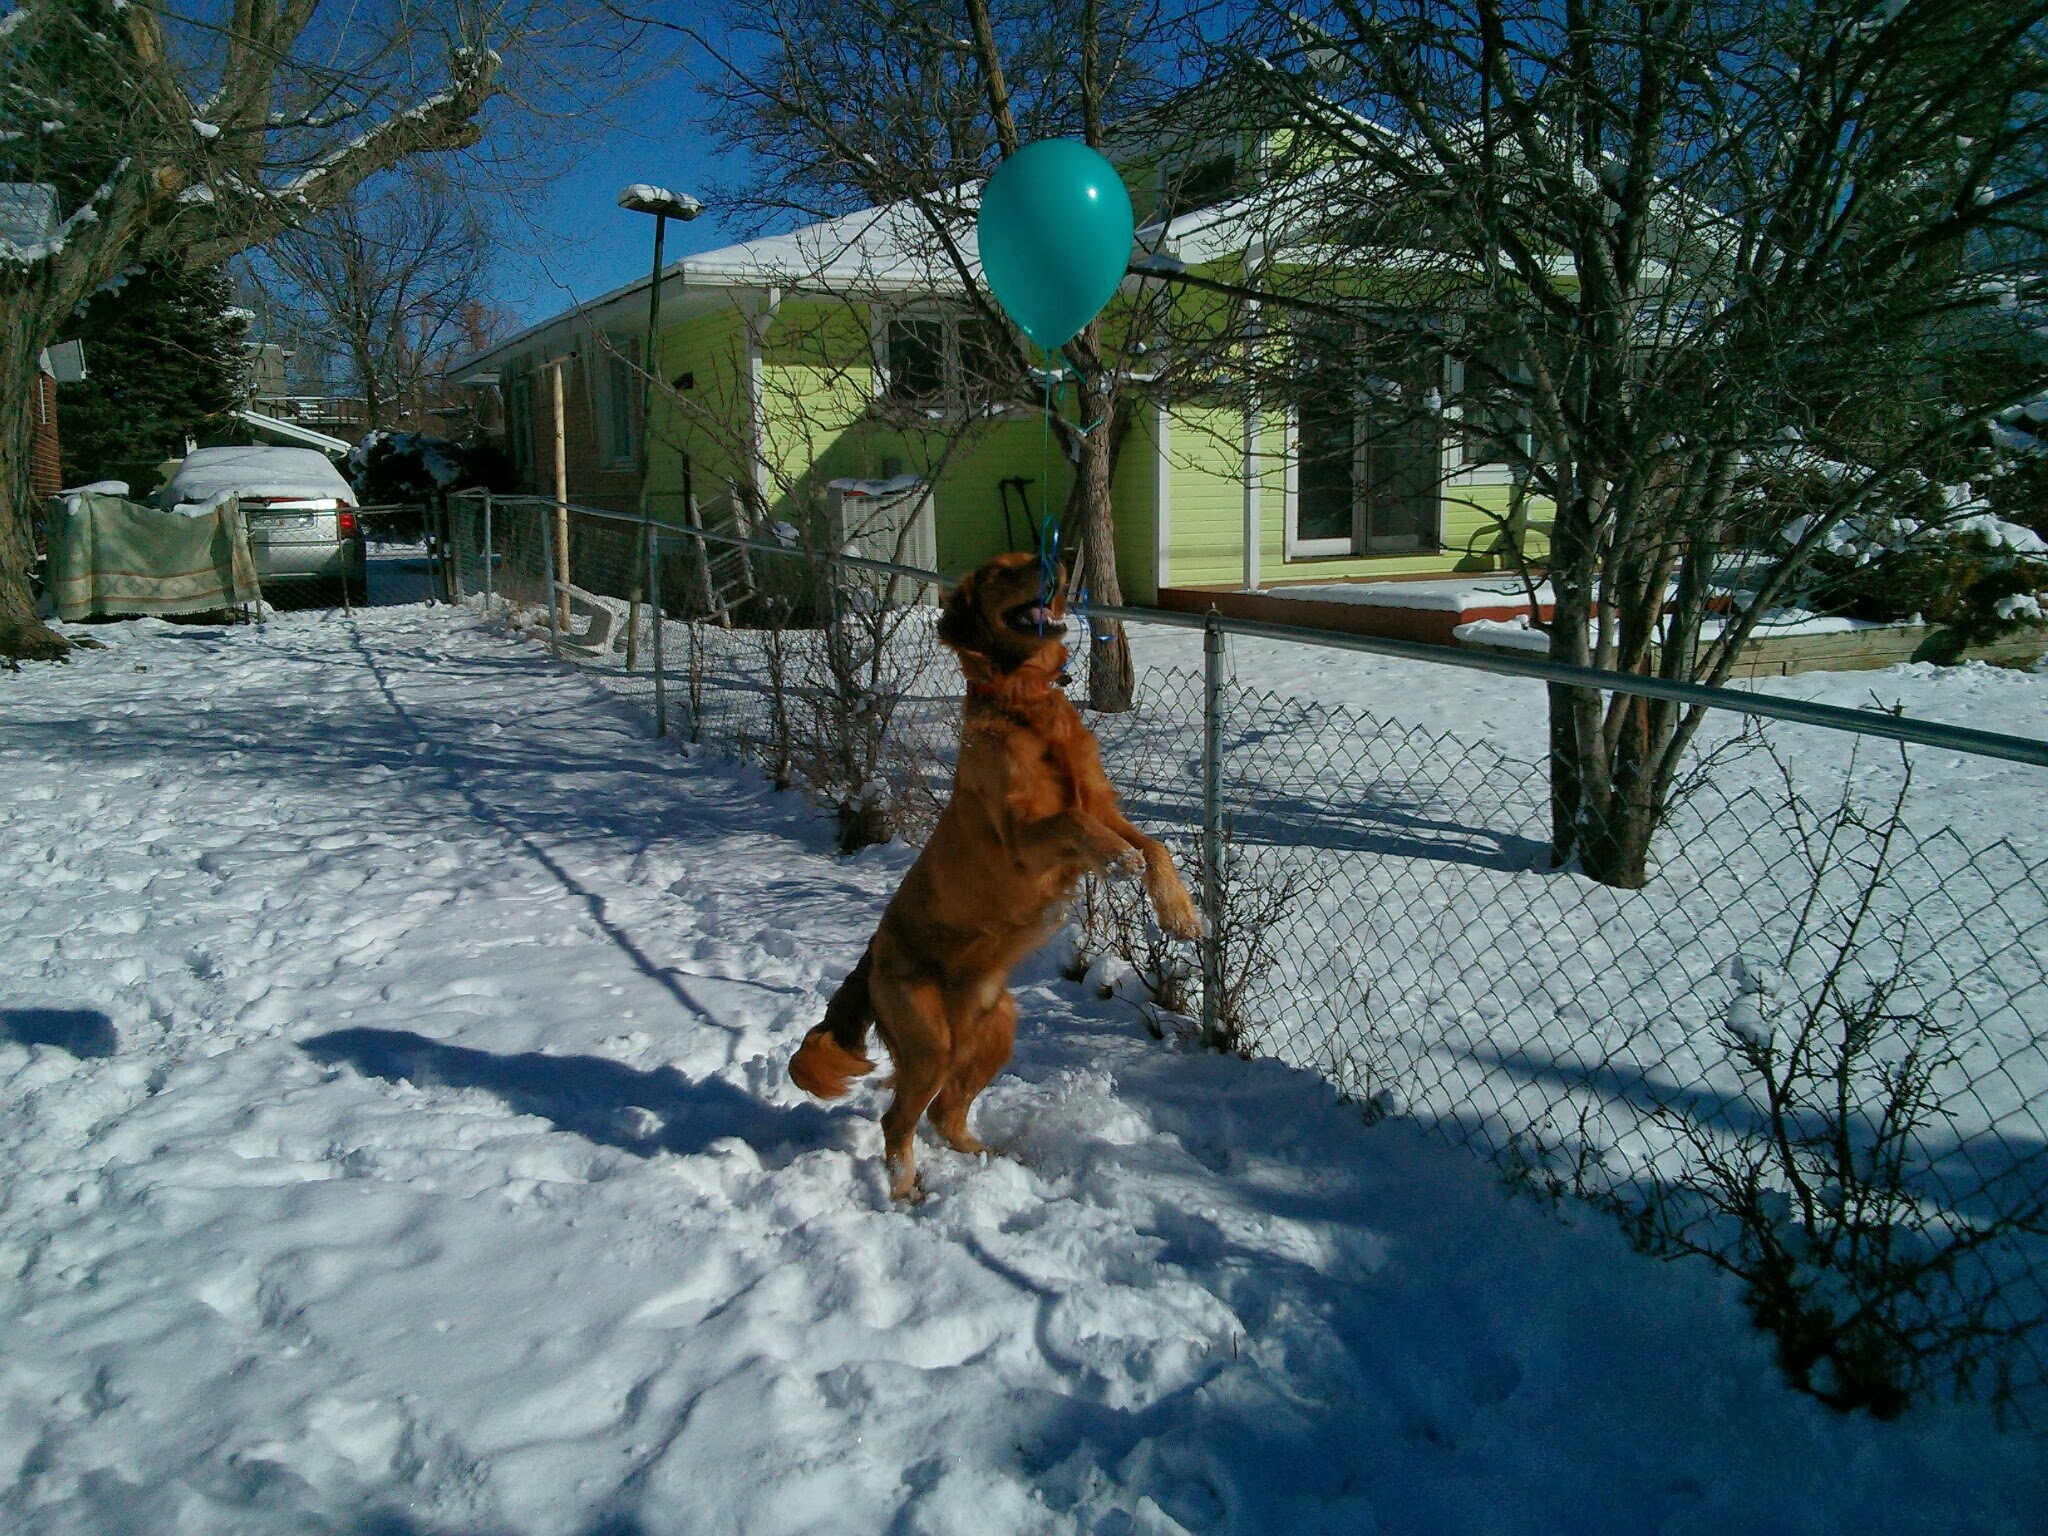 Bender the golden retriever jumps for the balloon